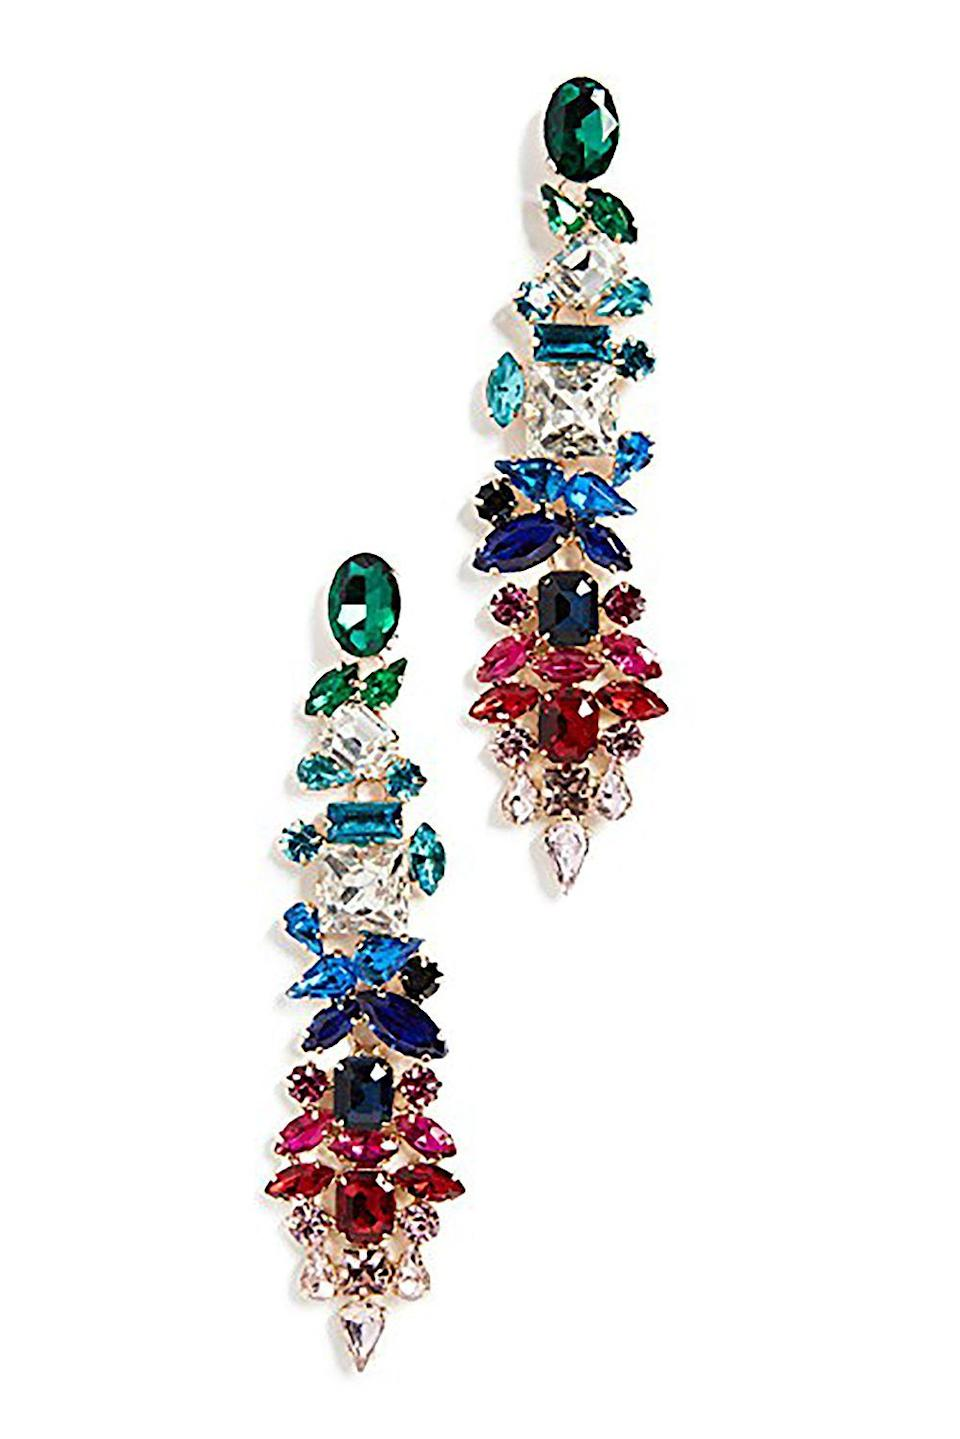 """<p><strong>Stella + Ruby</strong></p><p>shopbop.com</p><p><strong>$45.00</strong></p><p><a href=""""https://www.shopbop.com/rainbow-statement-earrings-stella-ruby/vp/v=1/1538083978.htm"""" rel=""""nofollow noopener"""" target=""""_blank"""" data-ylk=""""slk:SHOP IT"""" class=""""link rapid-noclick-resp"""">SHOP IT</a></p><p>These earrings are perfect for when you want to dress up your classic little black dress for a night out. The fun dangly set won't break the bank either at $45. A tip for making this the statement piece in your outfit: keep the rest of your accessories simple. </p>"""